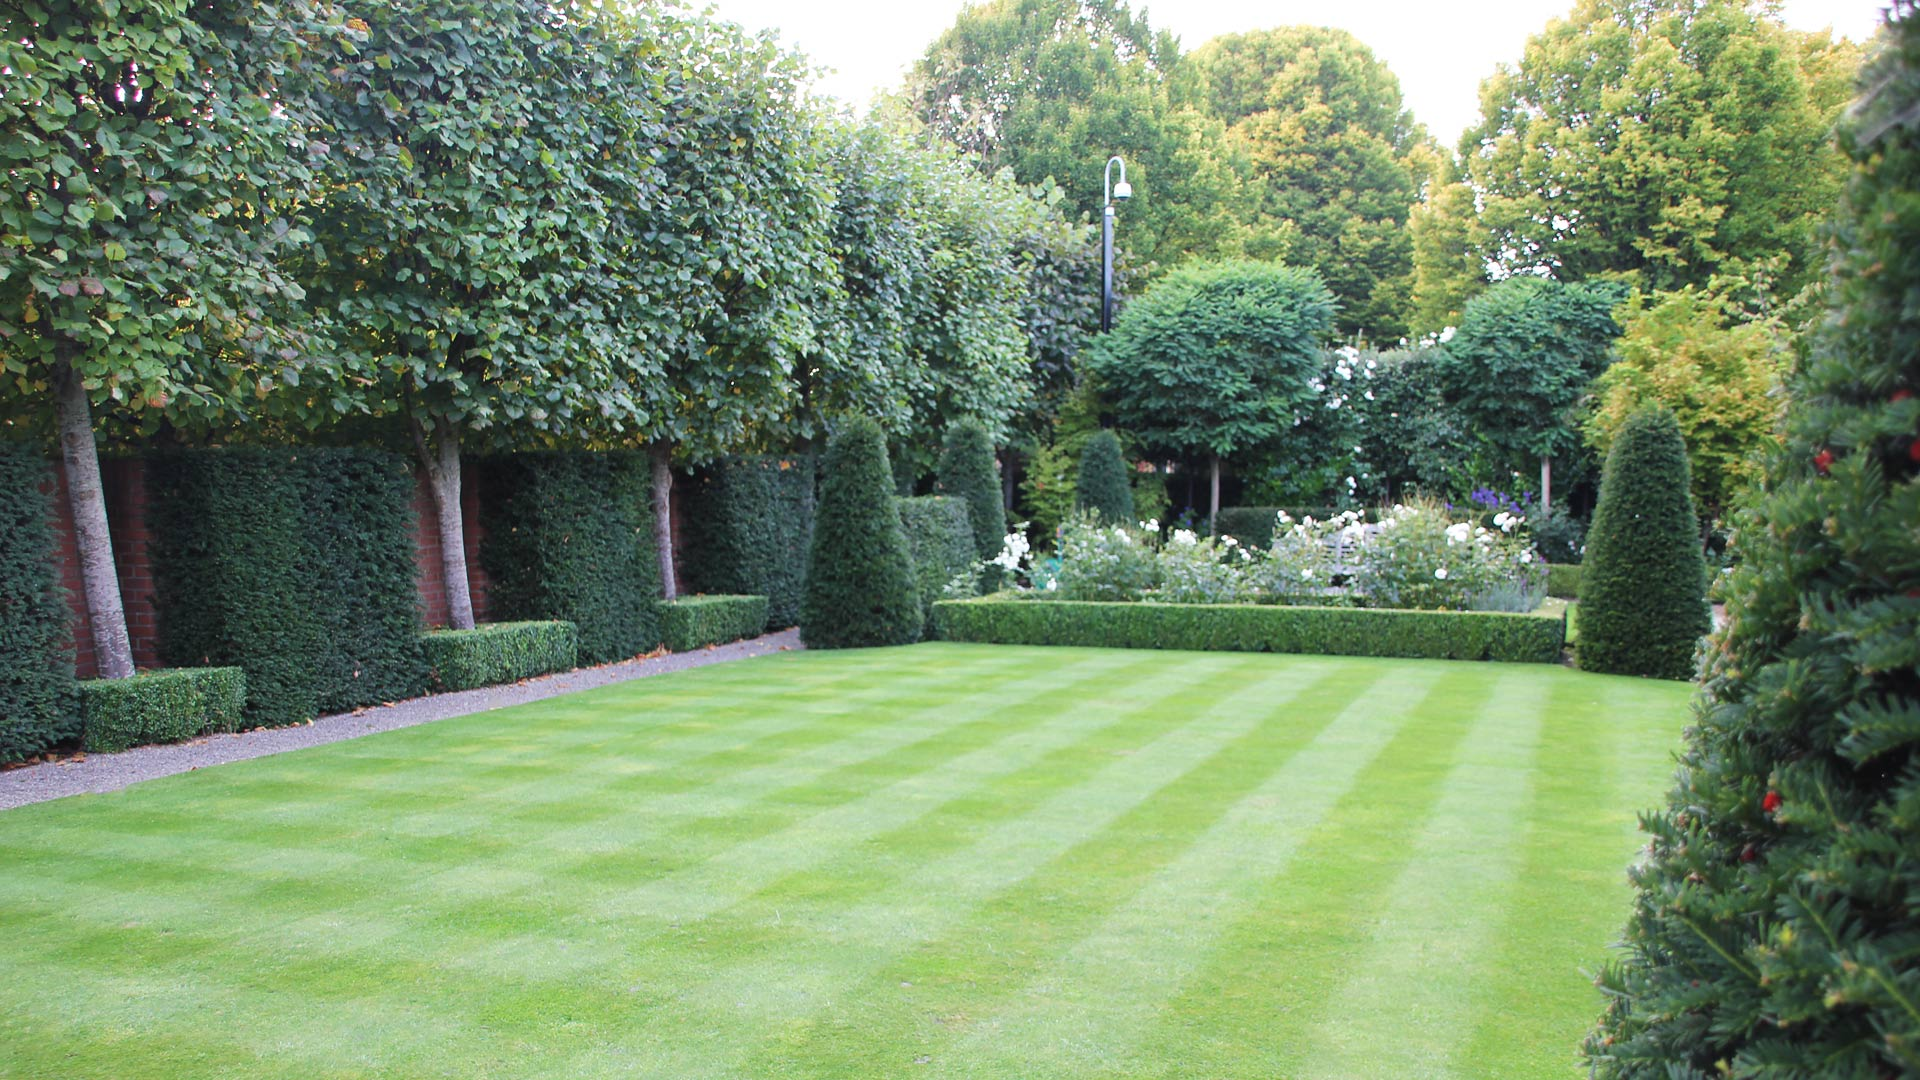 lawn care service damian costello garden design